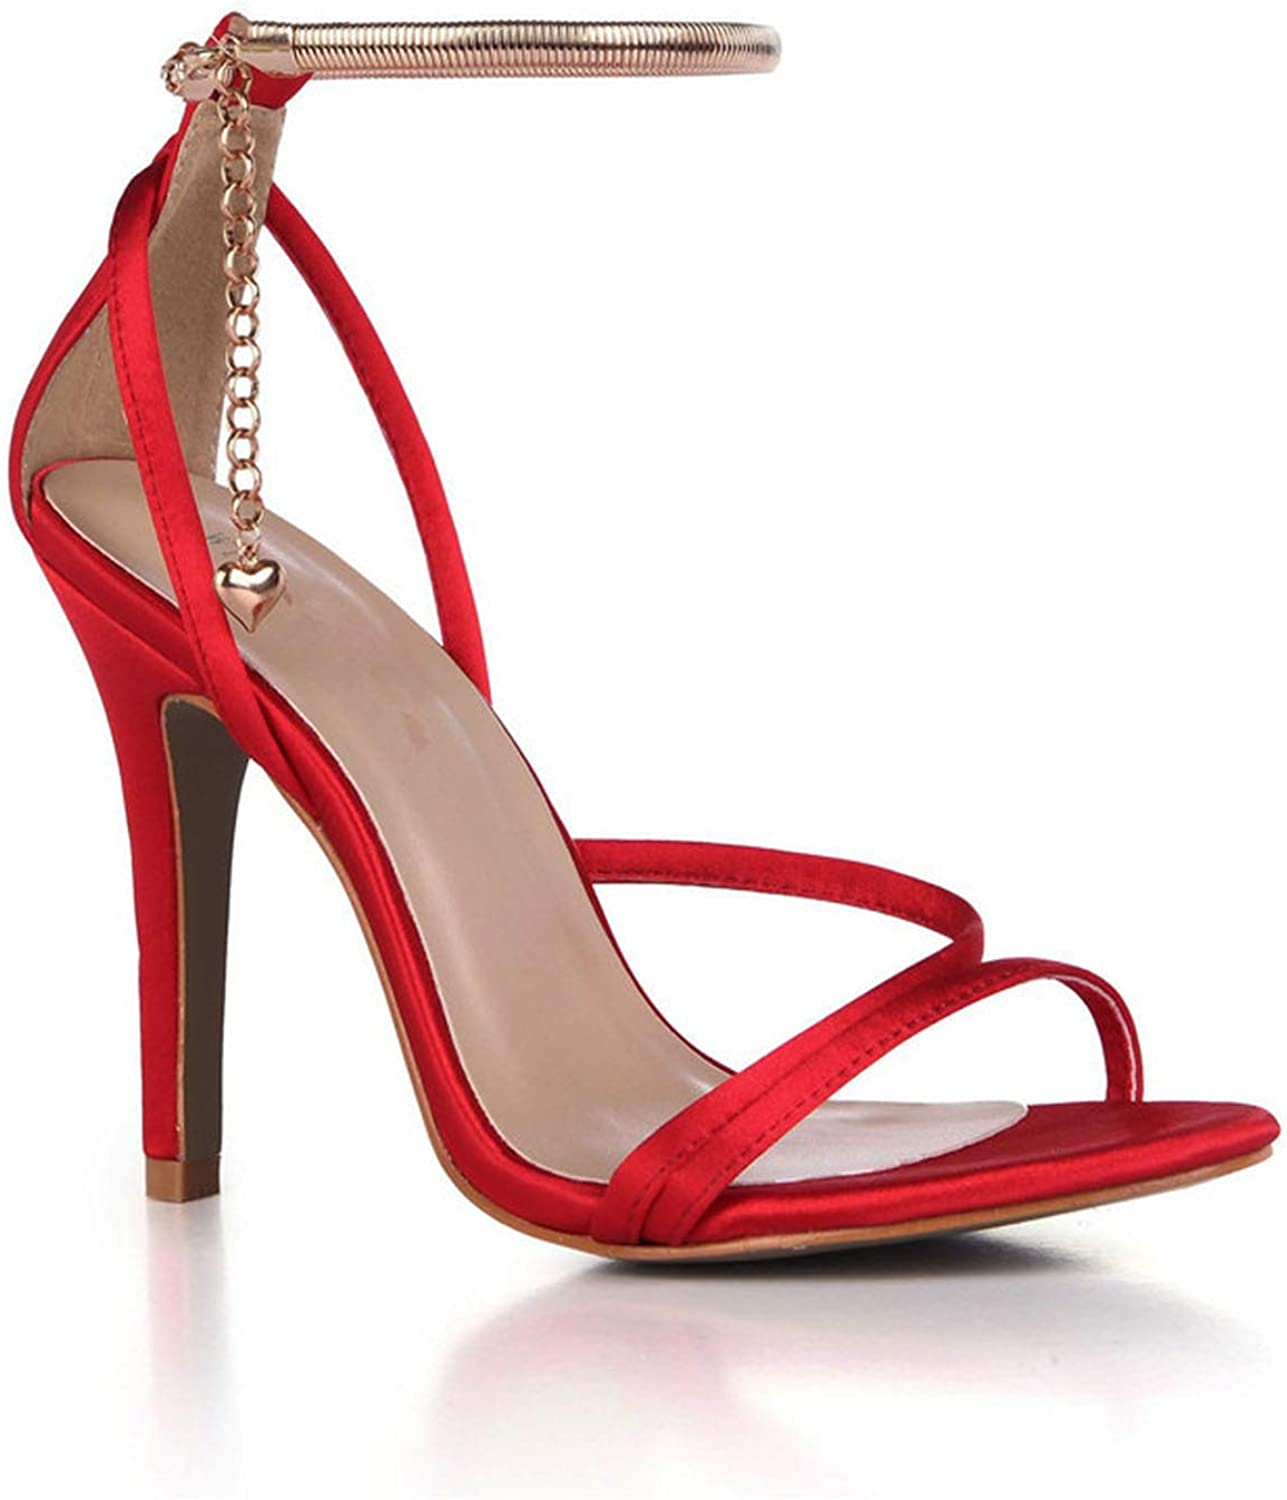 Summer Narrow Strap Buckle Sandals 10 cm Thin Heels Evening shoes Woman Ankle Strap Party Pumps